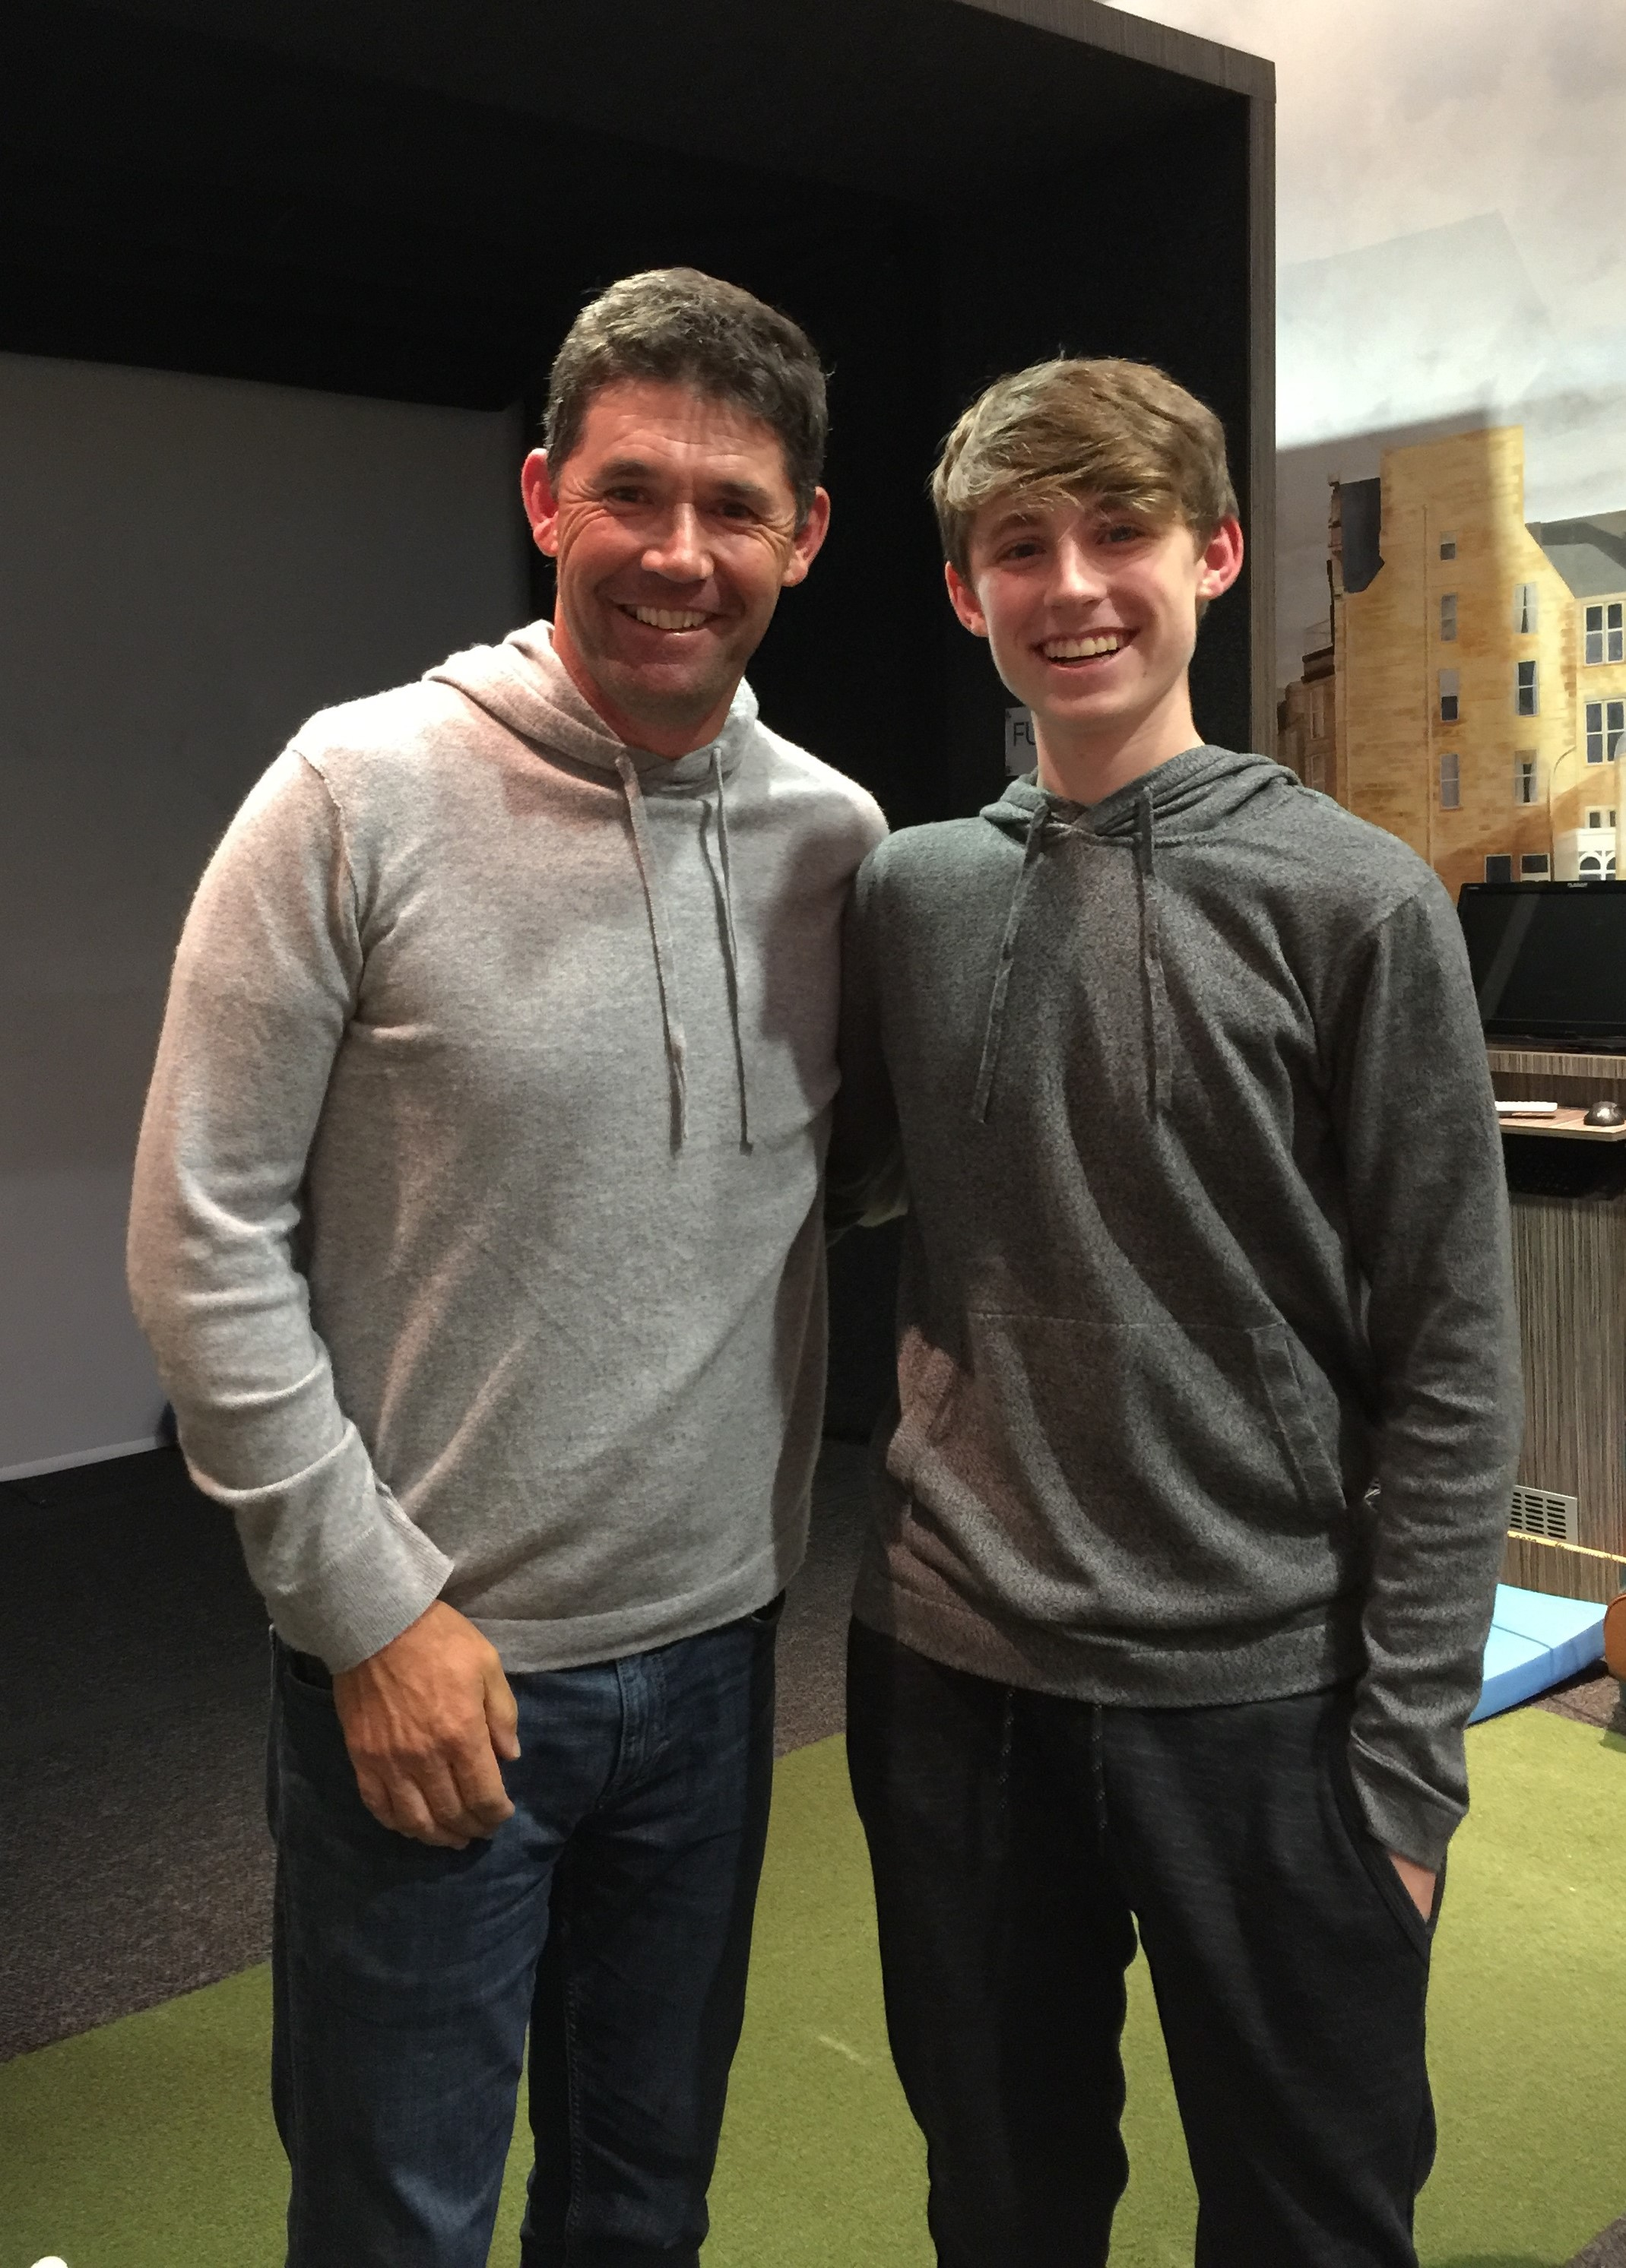 Padraig Harrington and his now 14-year old son Paddy.